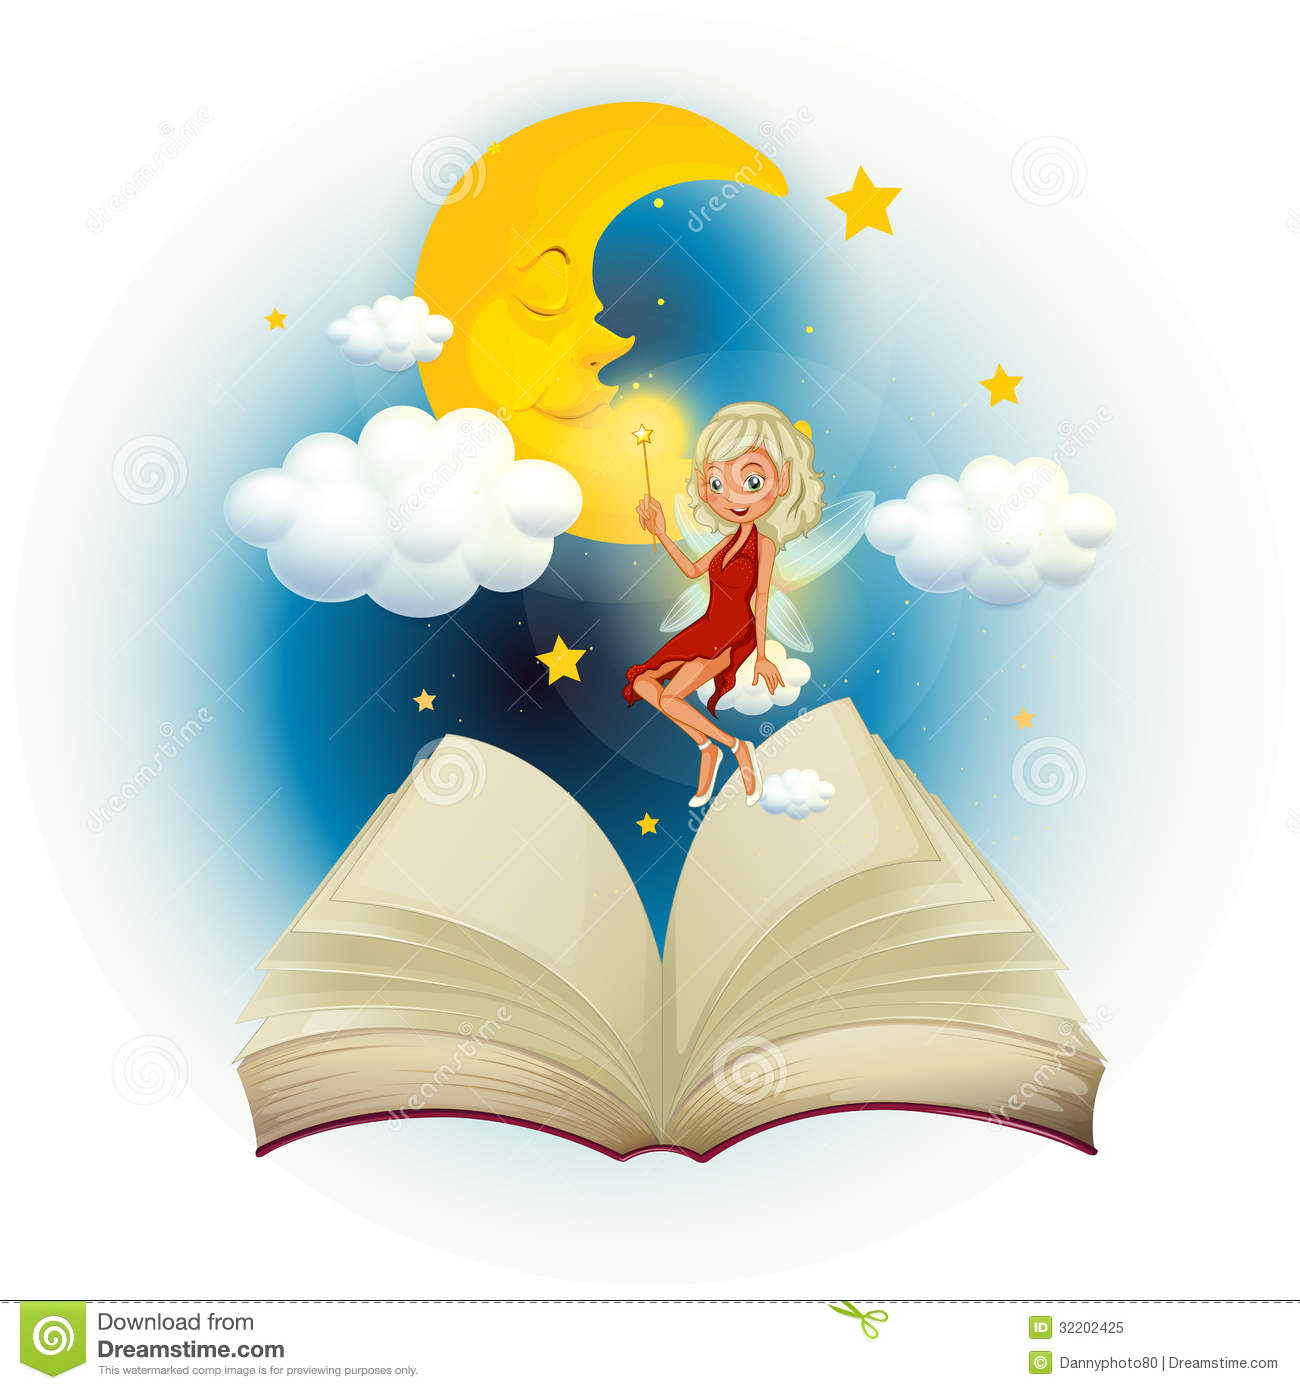 A Storybook With A Fairy And A Sleeping Moon Royalty Free